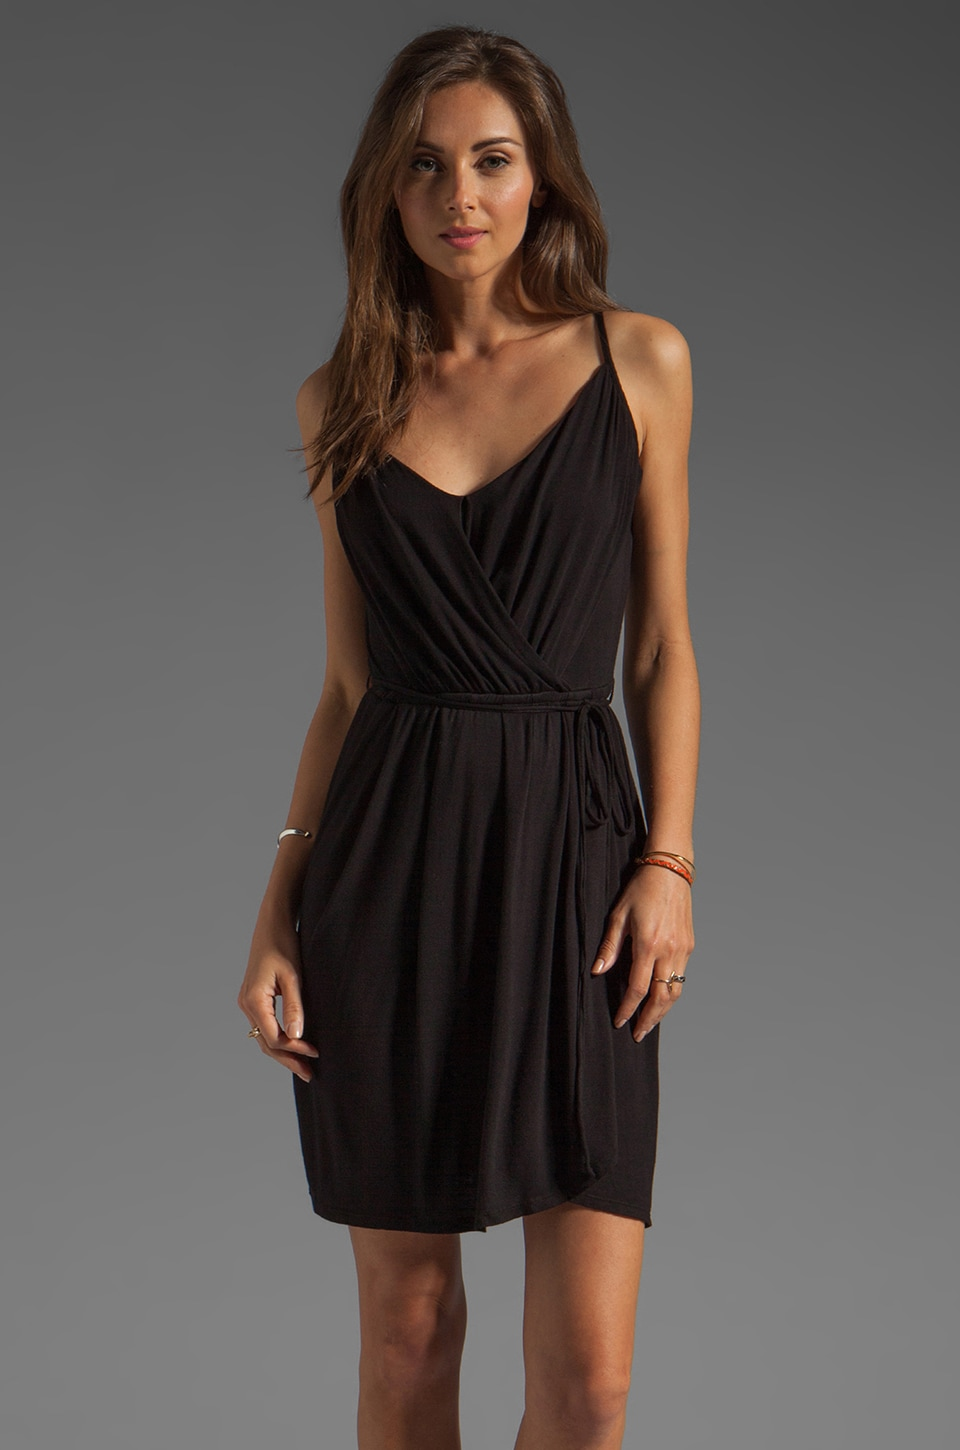 Bobi Tie Waist Wrap Dress in Black